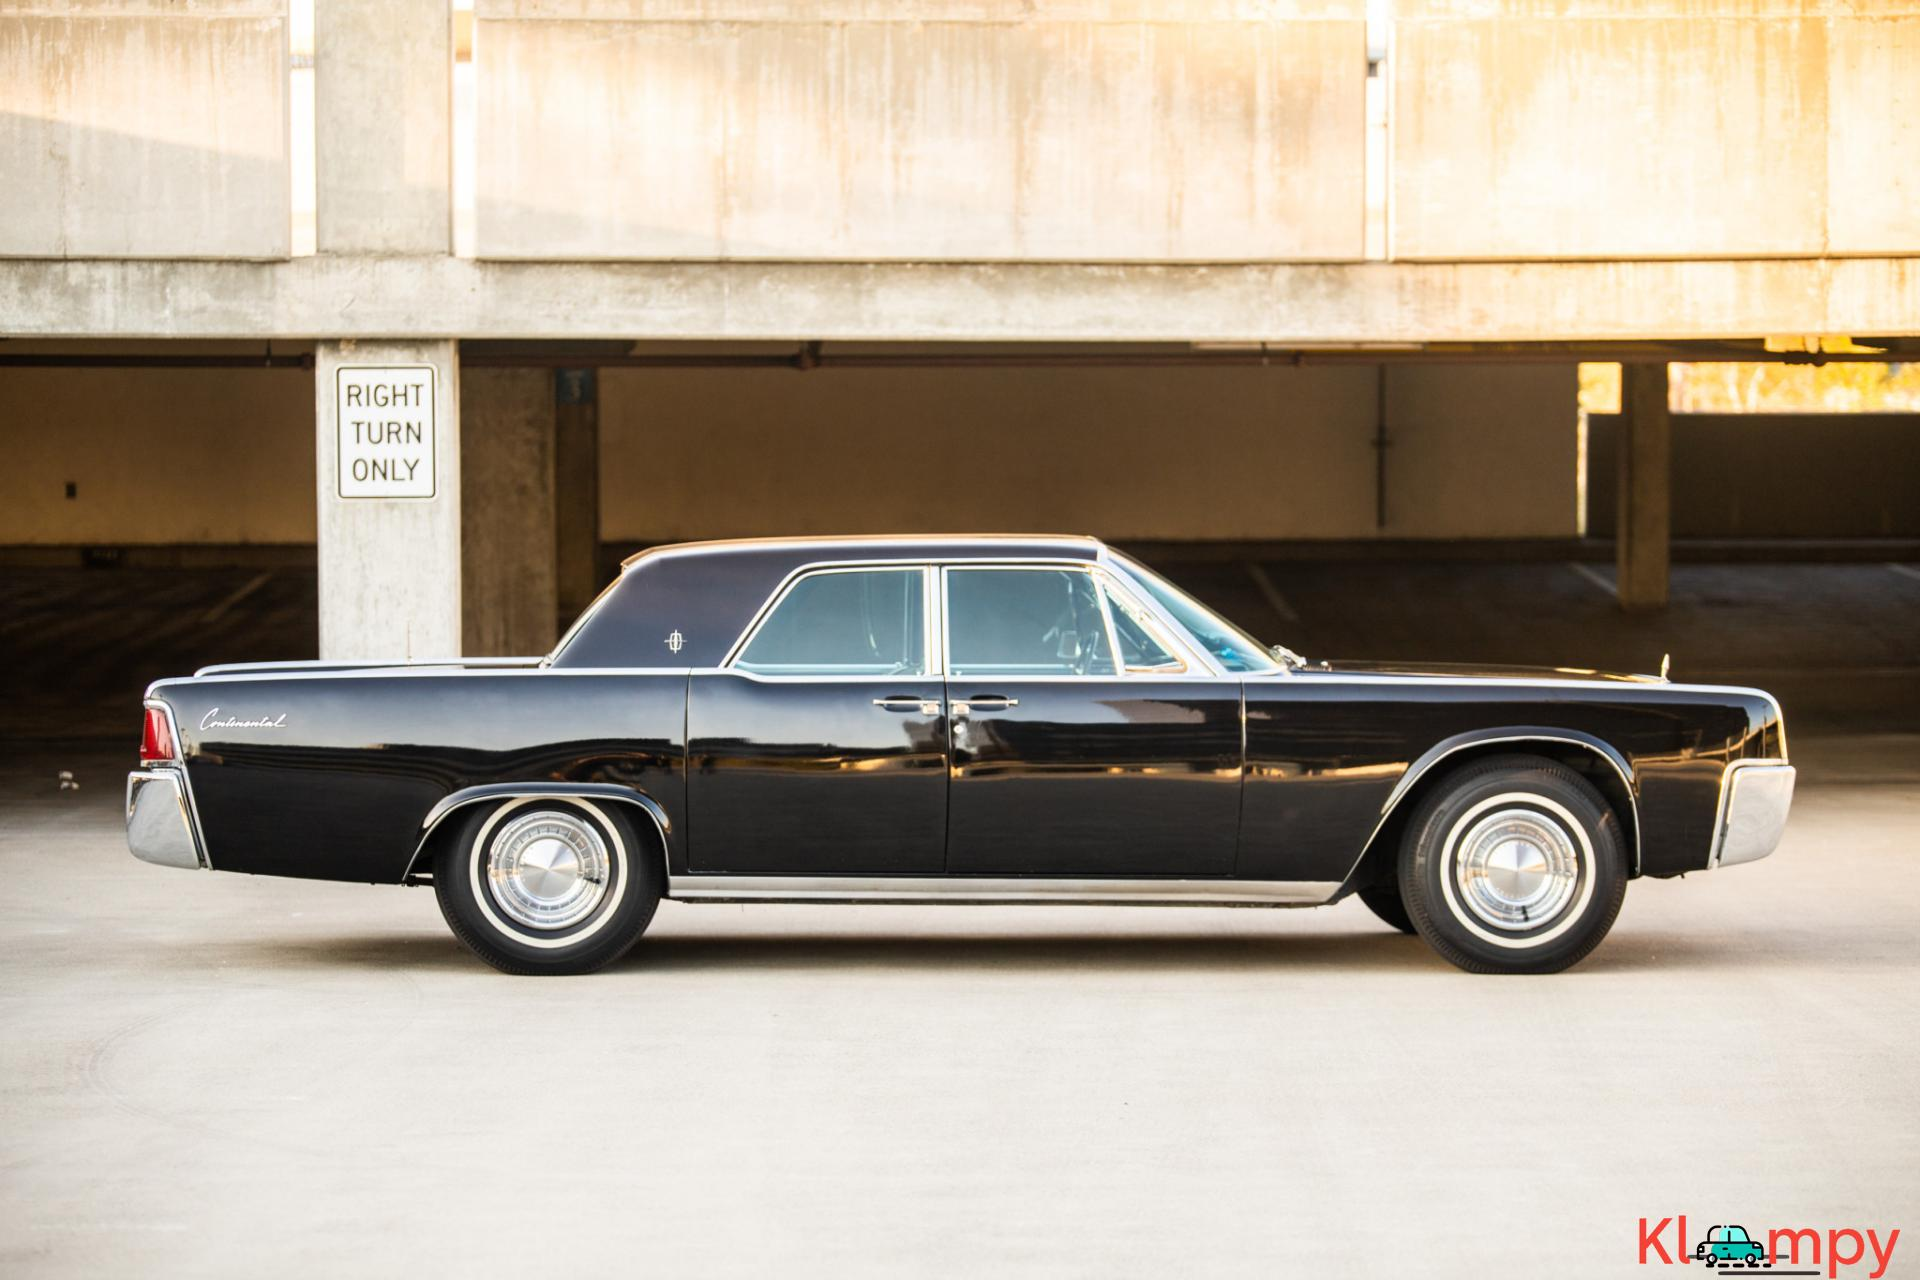 1962 Lincoln Continental Presidential Black - 13/19